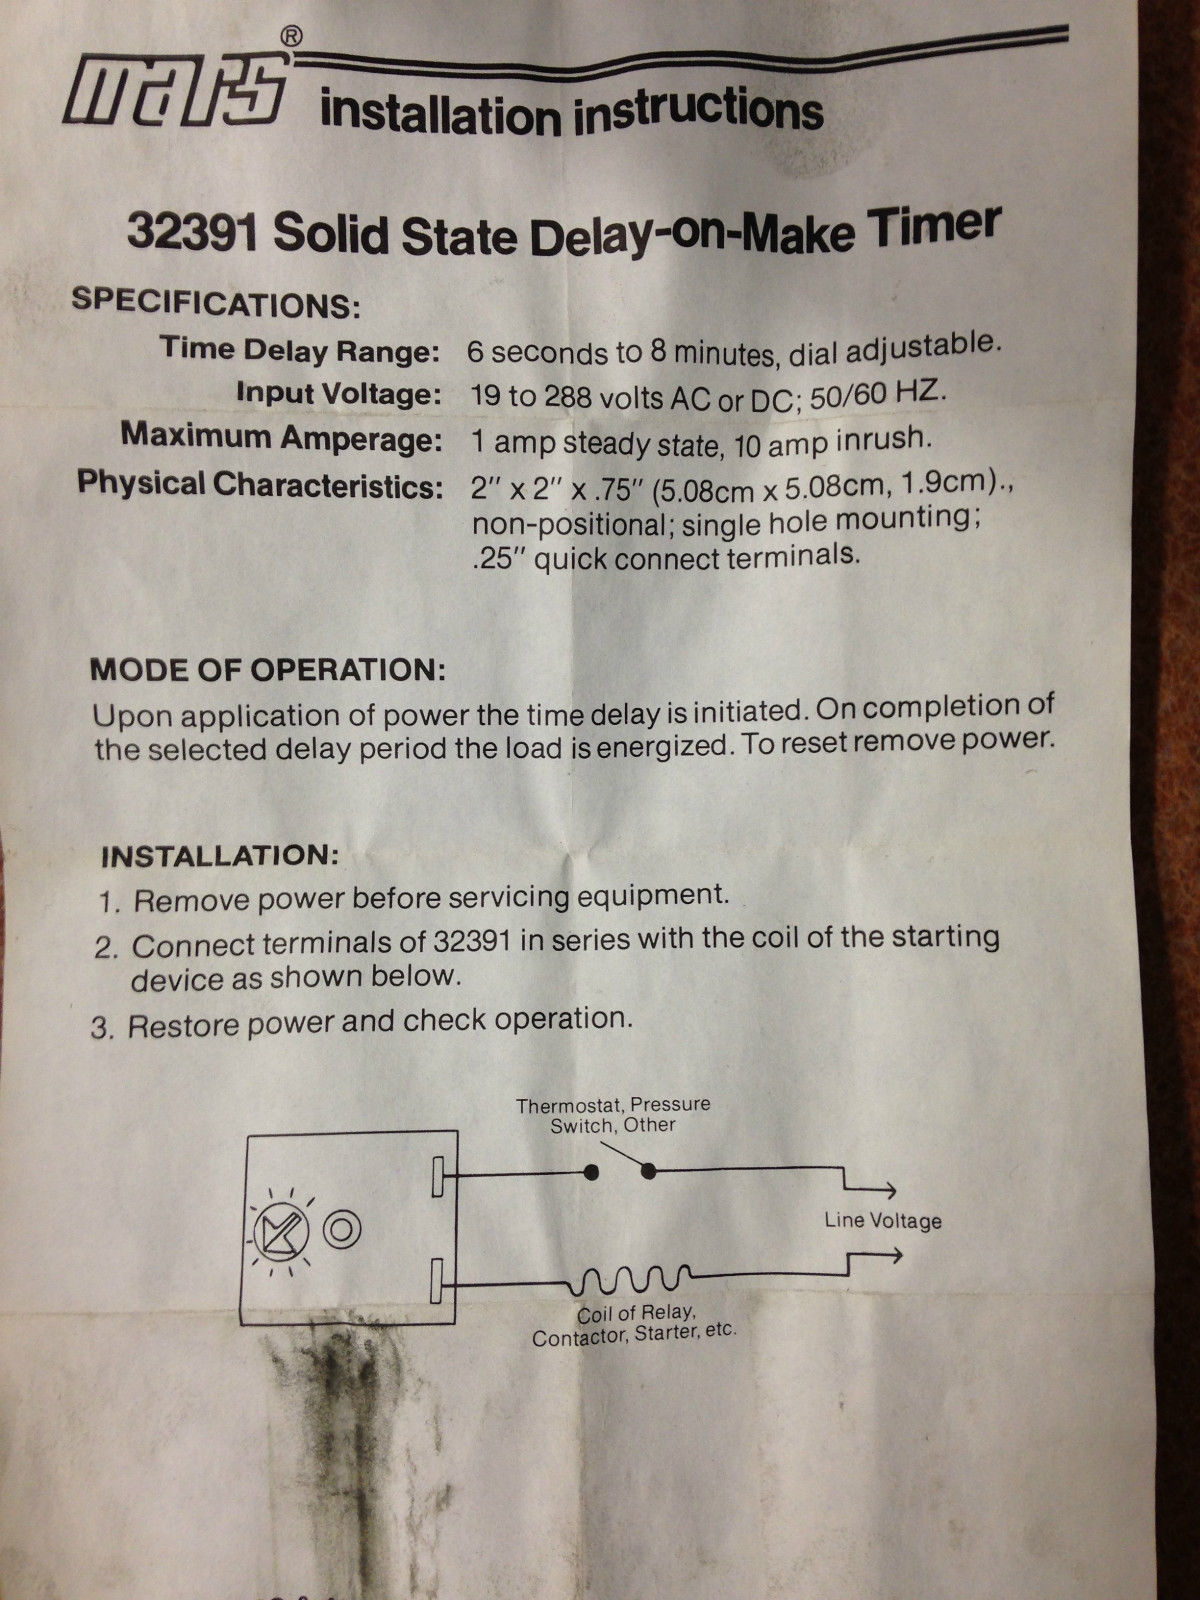 Mars Time Delay Relay Wiring Diagram Free Vehicle Diagrams Solid State On Make Timer 32391 Icm102b And 12 Similar Items Rh Bonanza Com 11 Pin